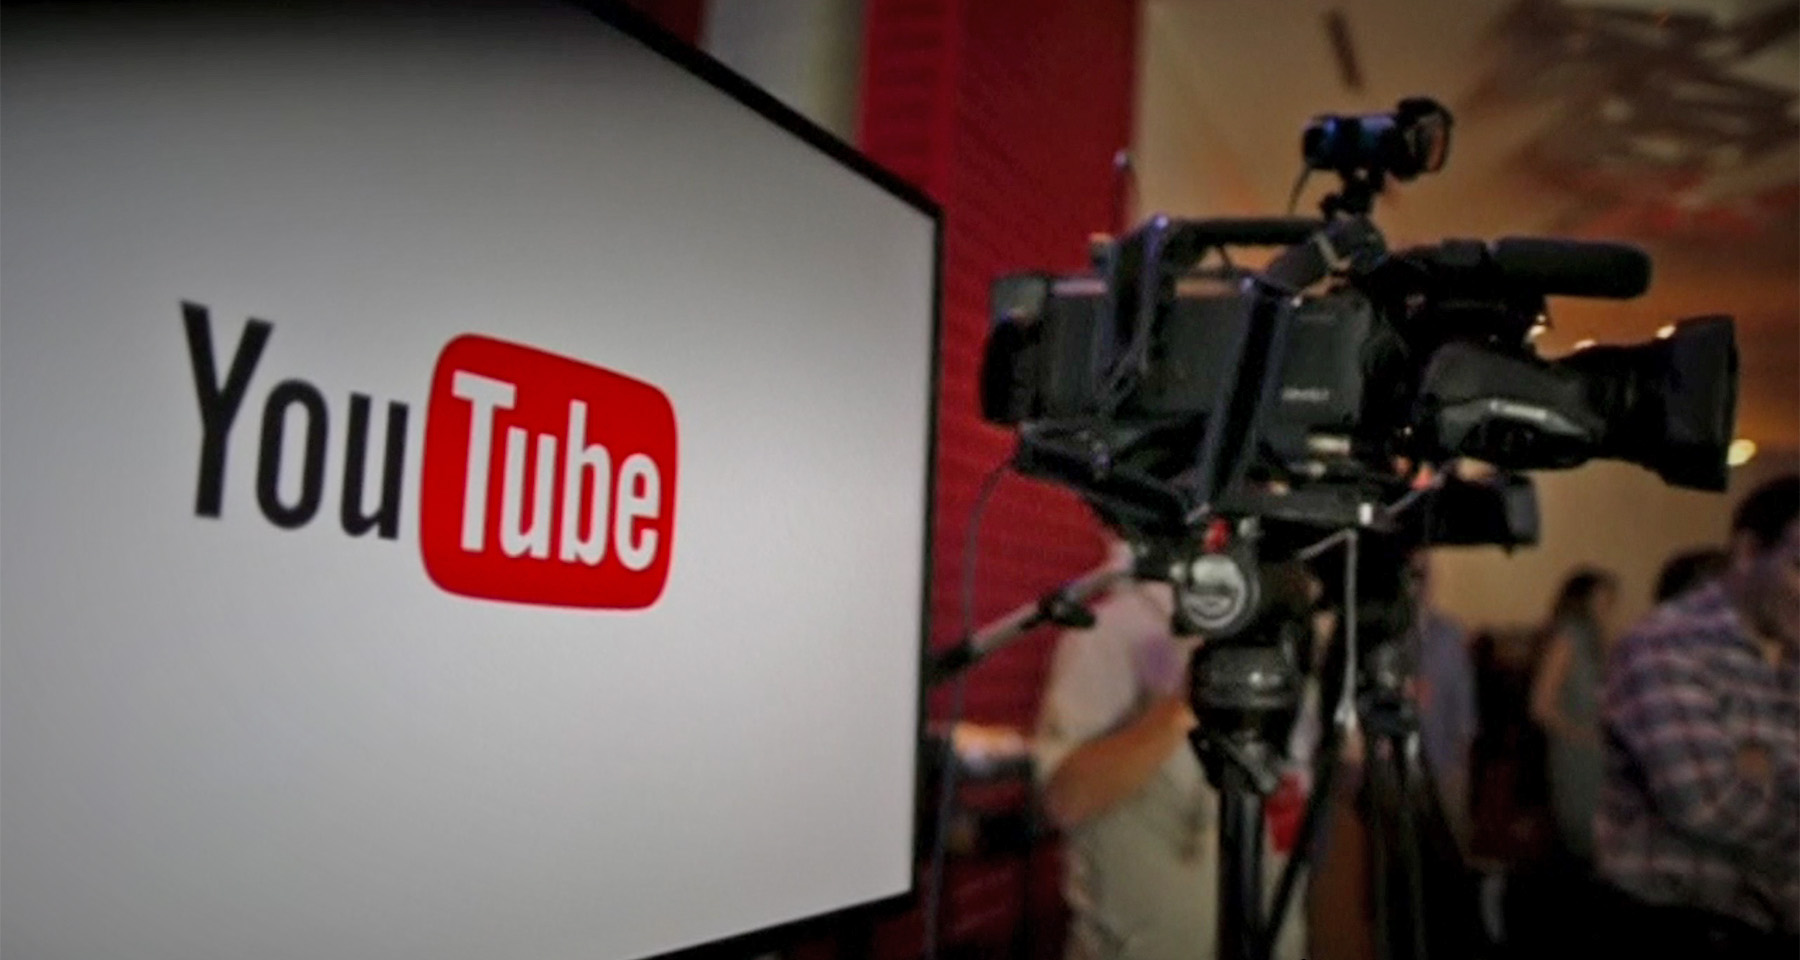 With backlash against Google, YouTube ads, is it time for publishers to step up?